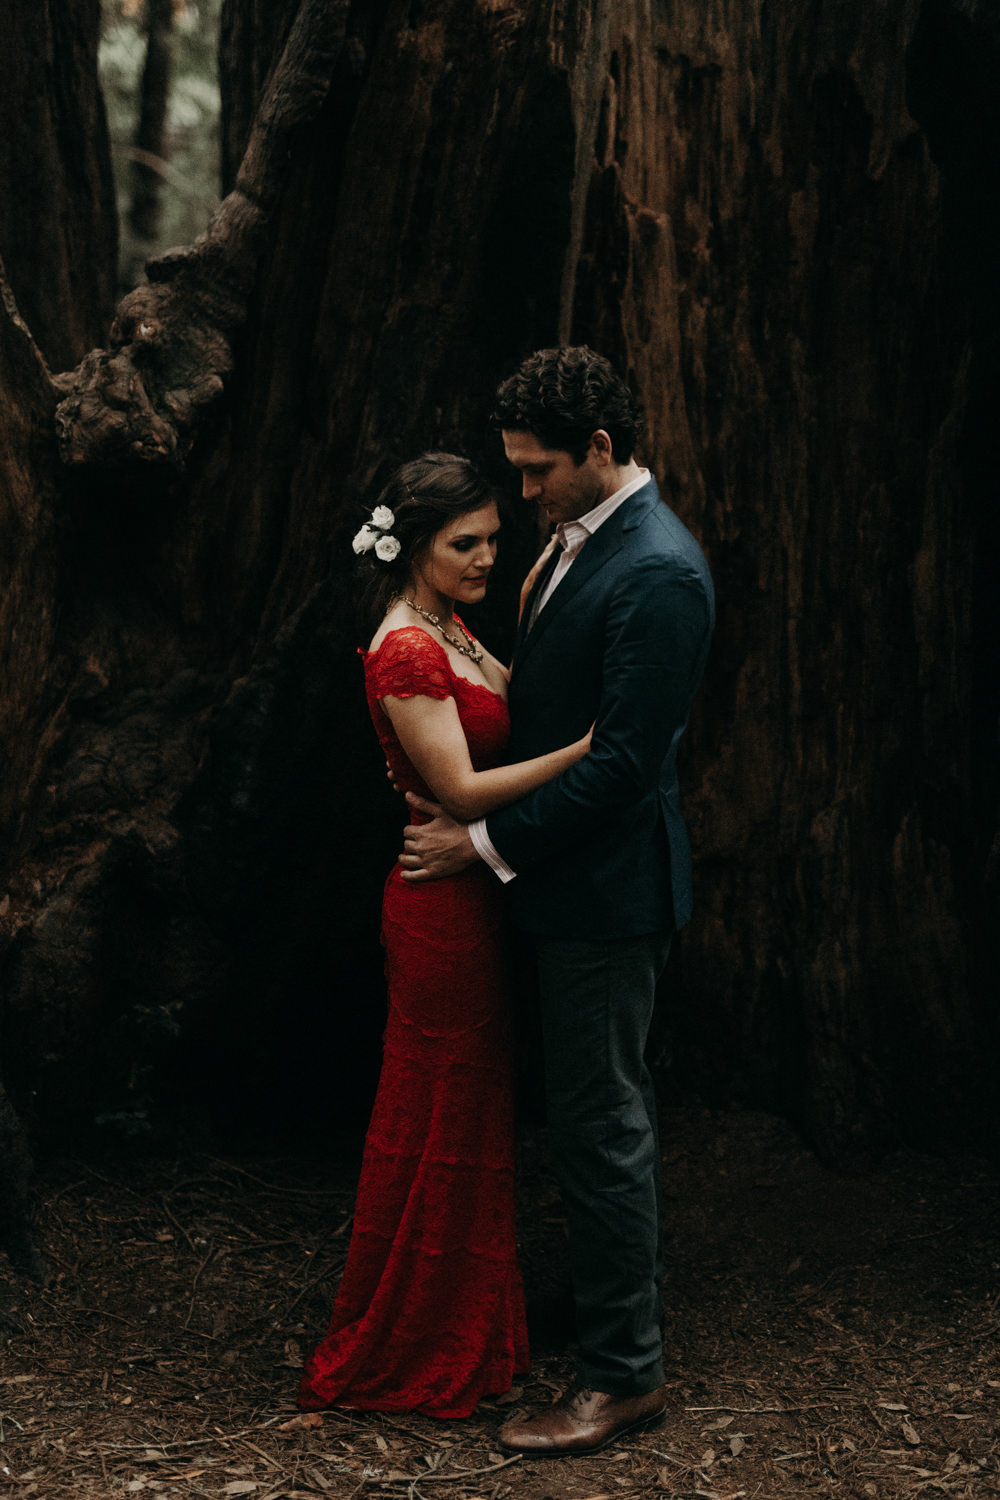 couple-intimate-engagement-session-mt-tam-46.jpg